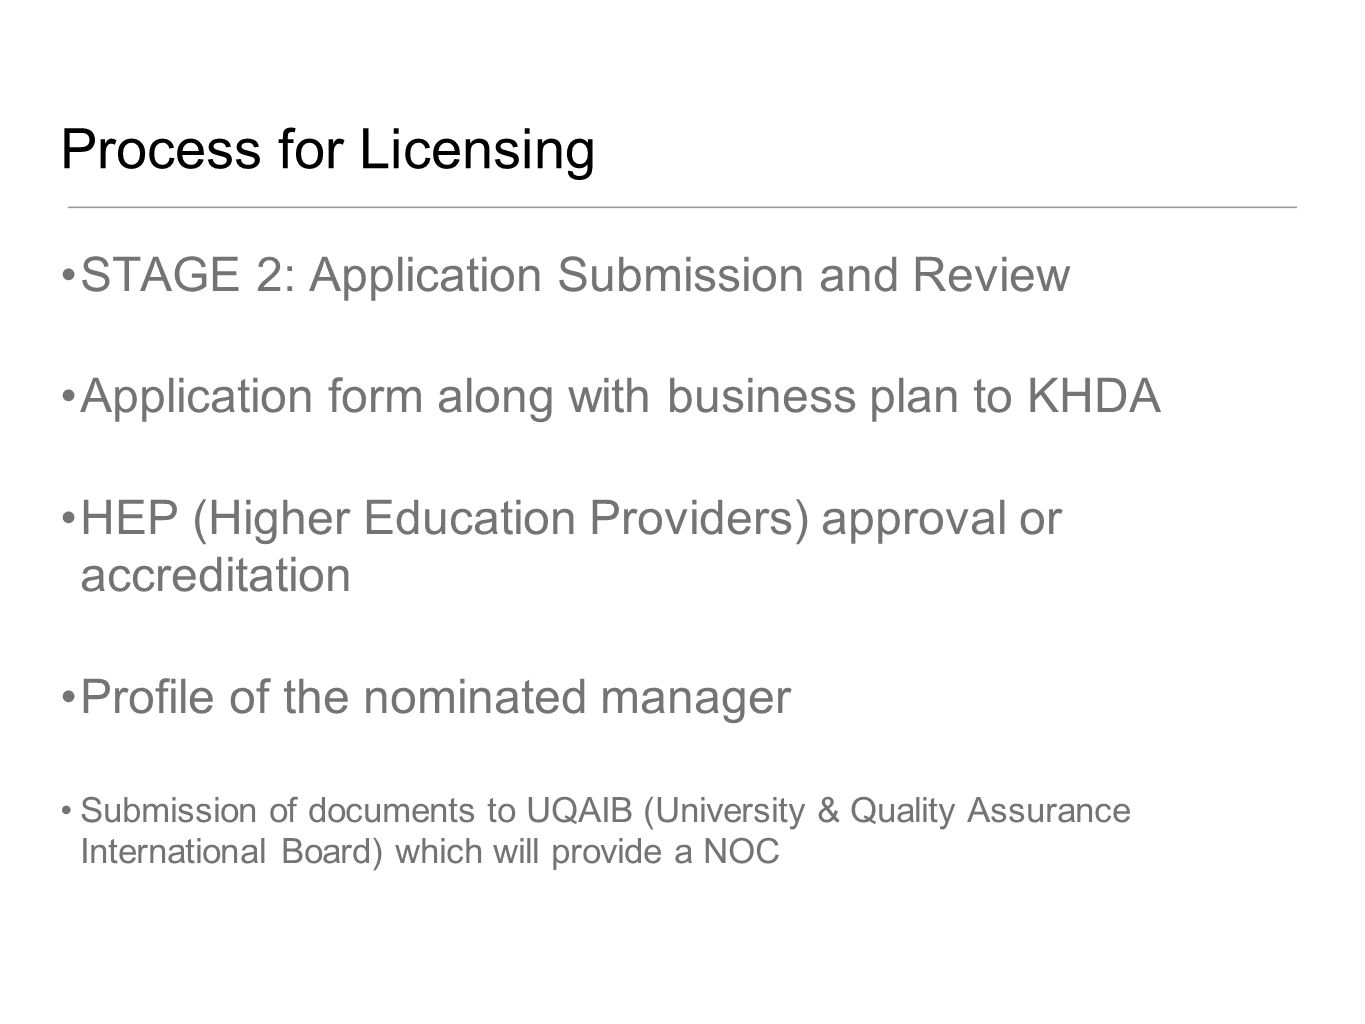 Process for Licensing STAGE 2: Application Submission and Review Application form along with business plan to KHDA HEP (Higher Education Providers) approval or accreditation Profile of the nominated manager Submission of documents to UQAIB (University & Quality Assurance International Board) which will provide a NOC